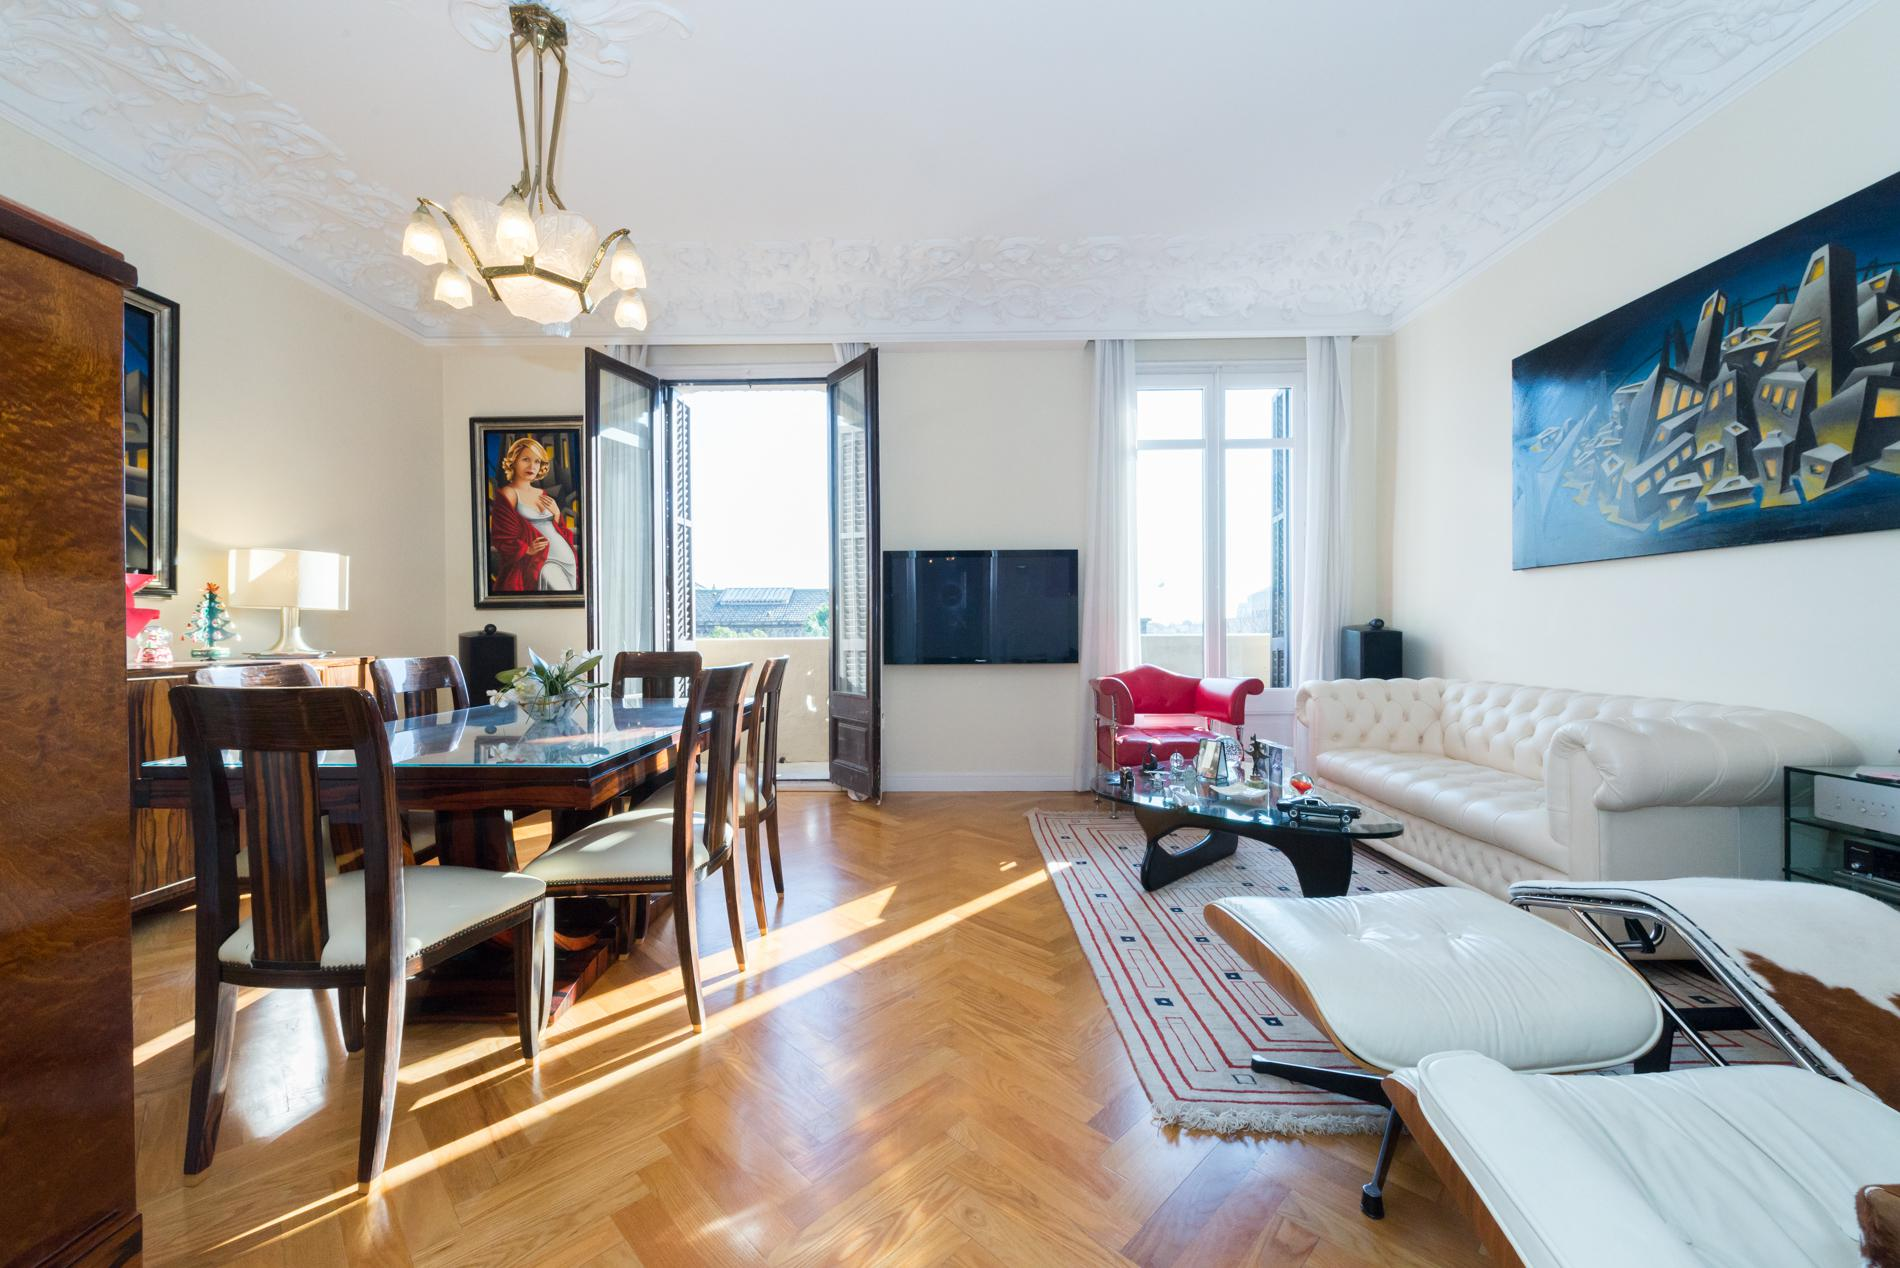 174066 Apartment for sale in Eixample, Old Left Eixample 7